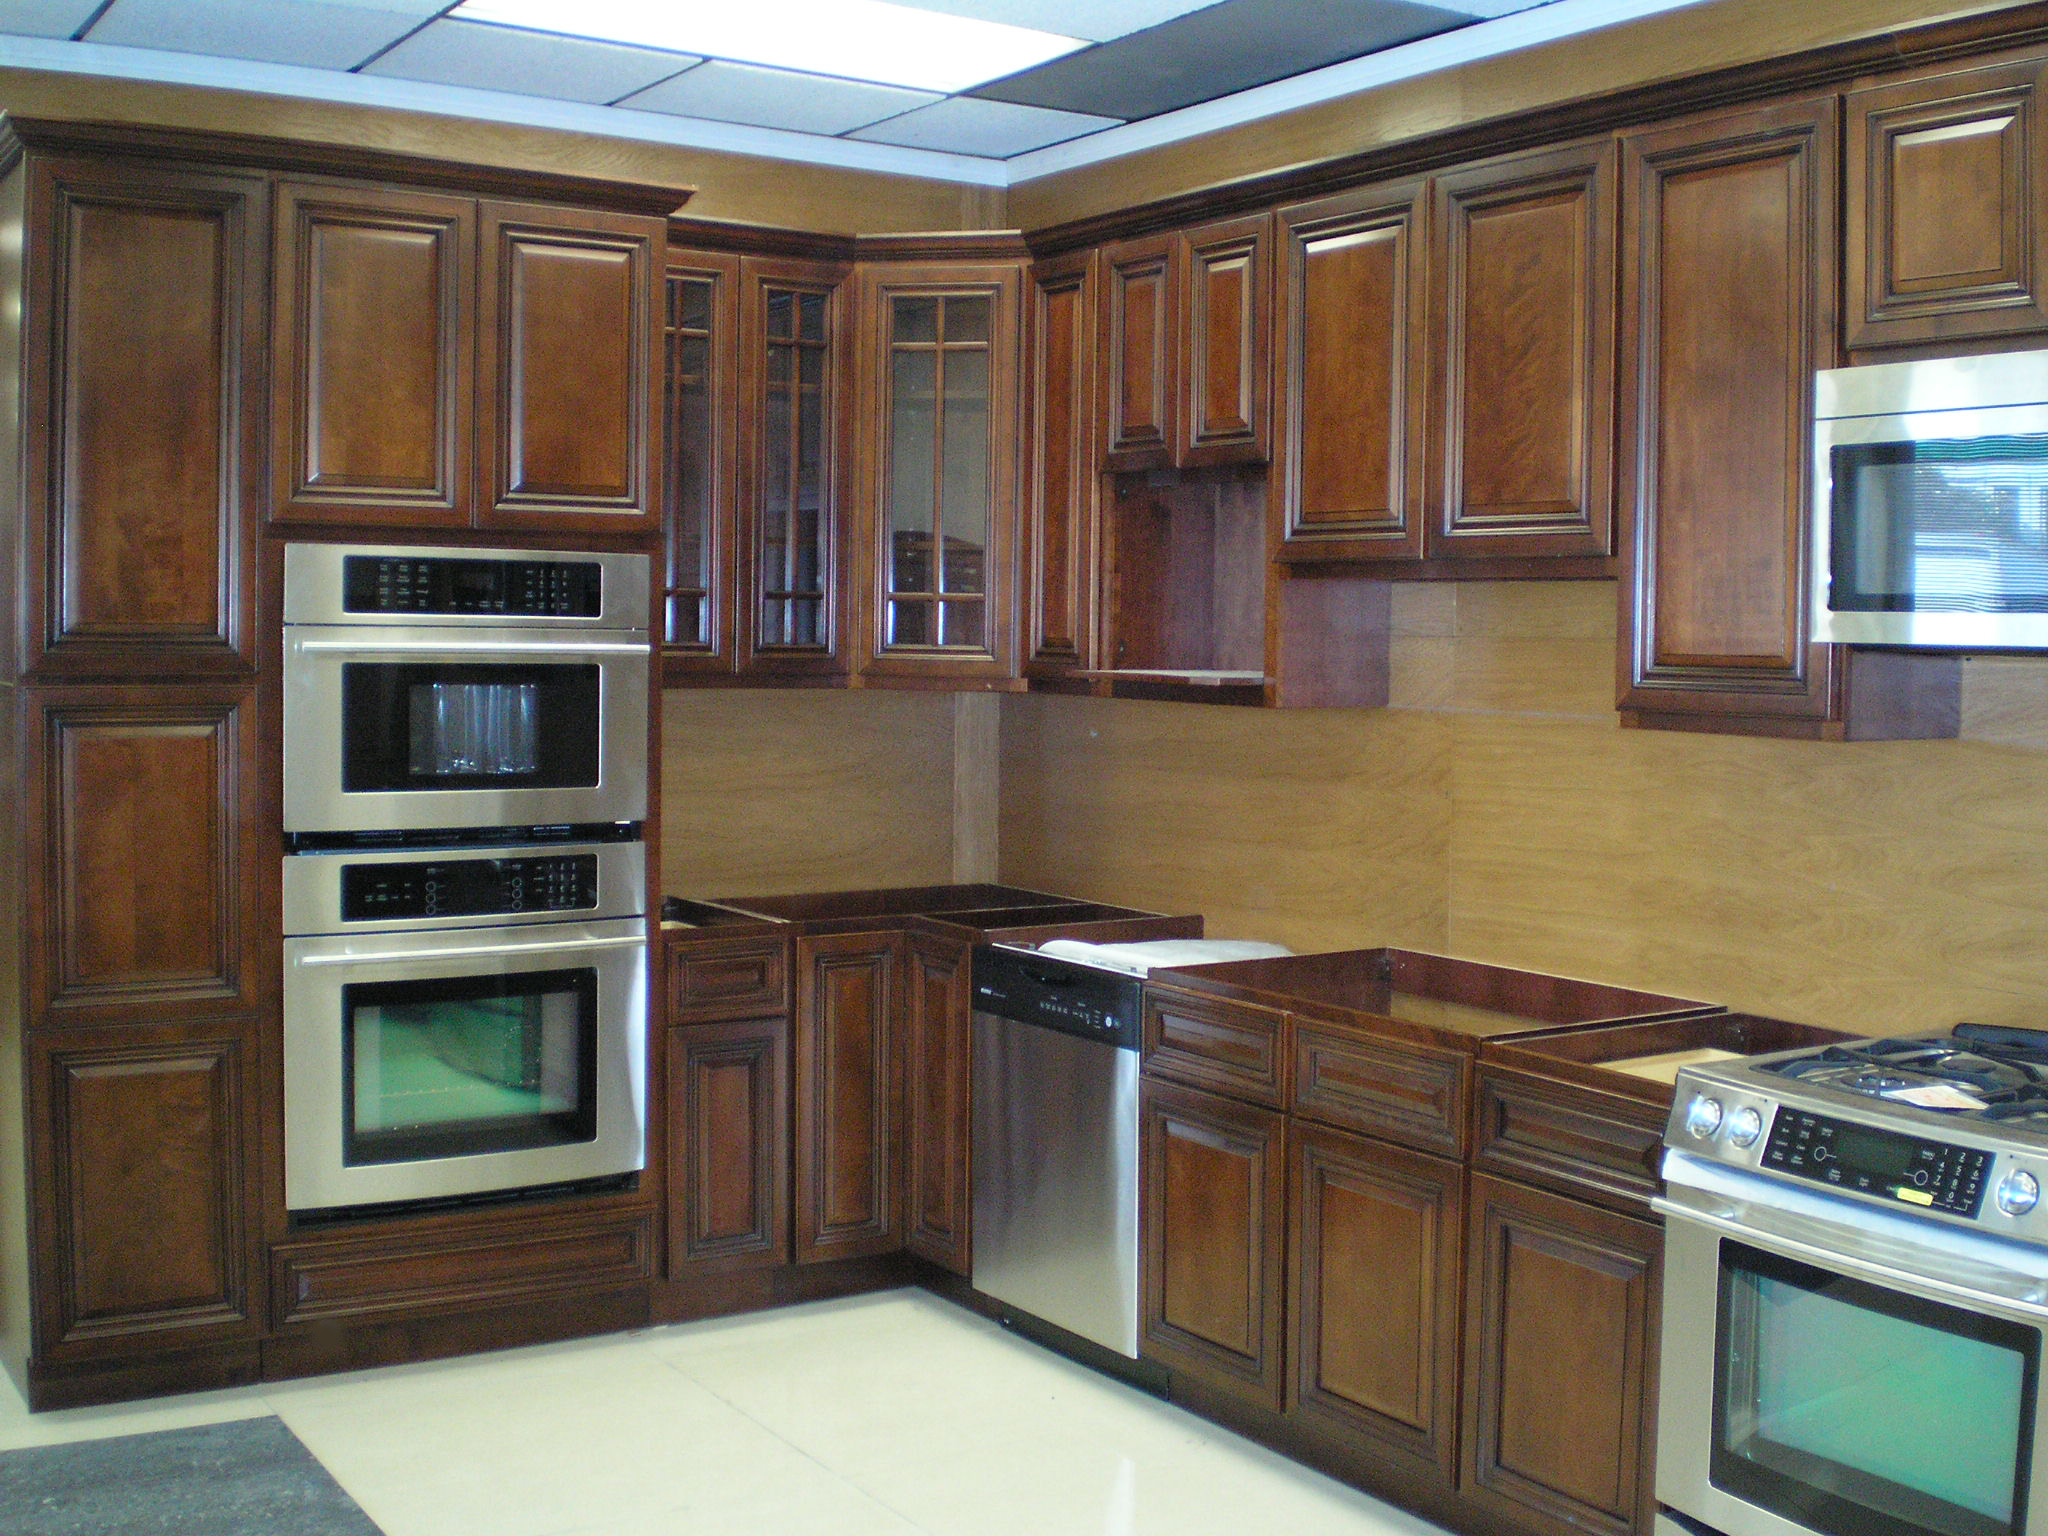 Kitchen Furnitur Exotic Walnut Kitchen Cabinets Solid Wood Kitchen Cabinetry